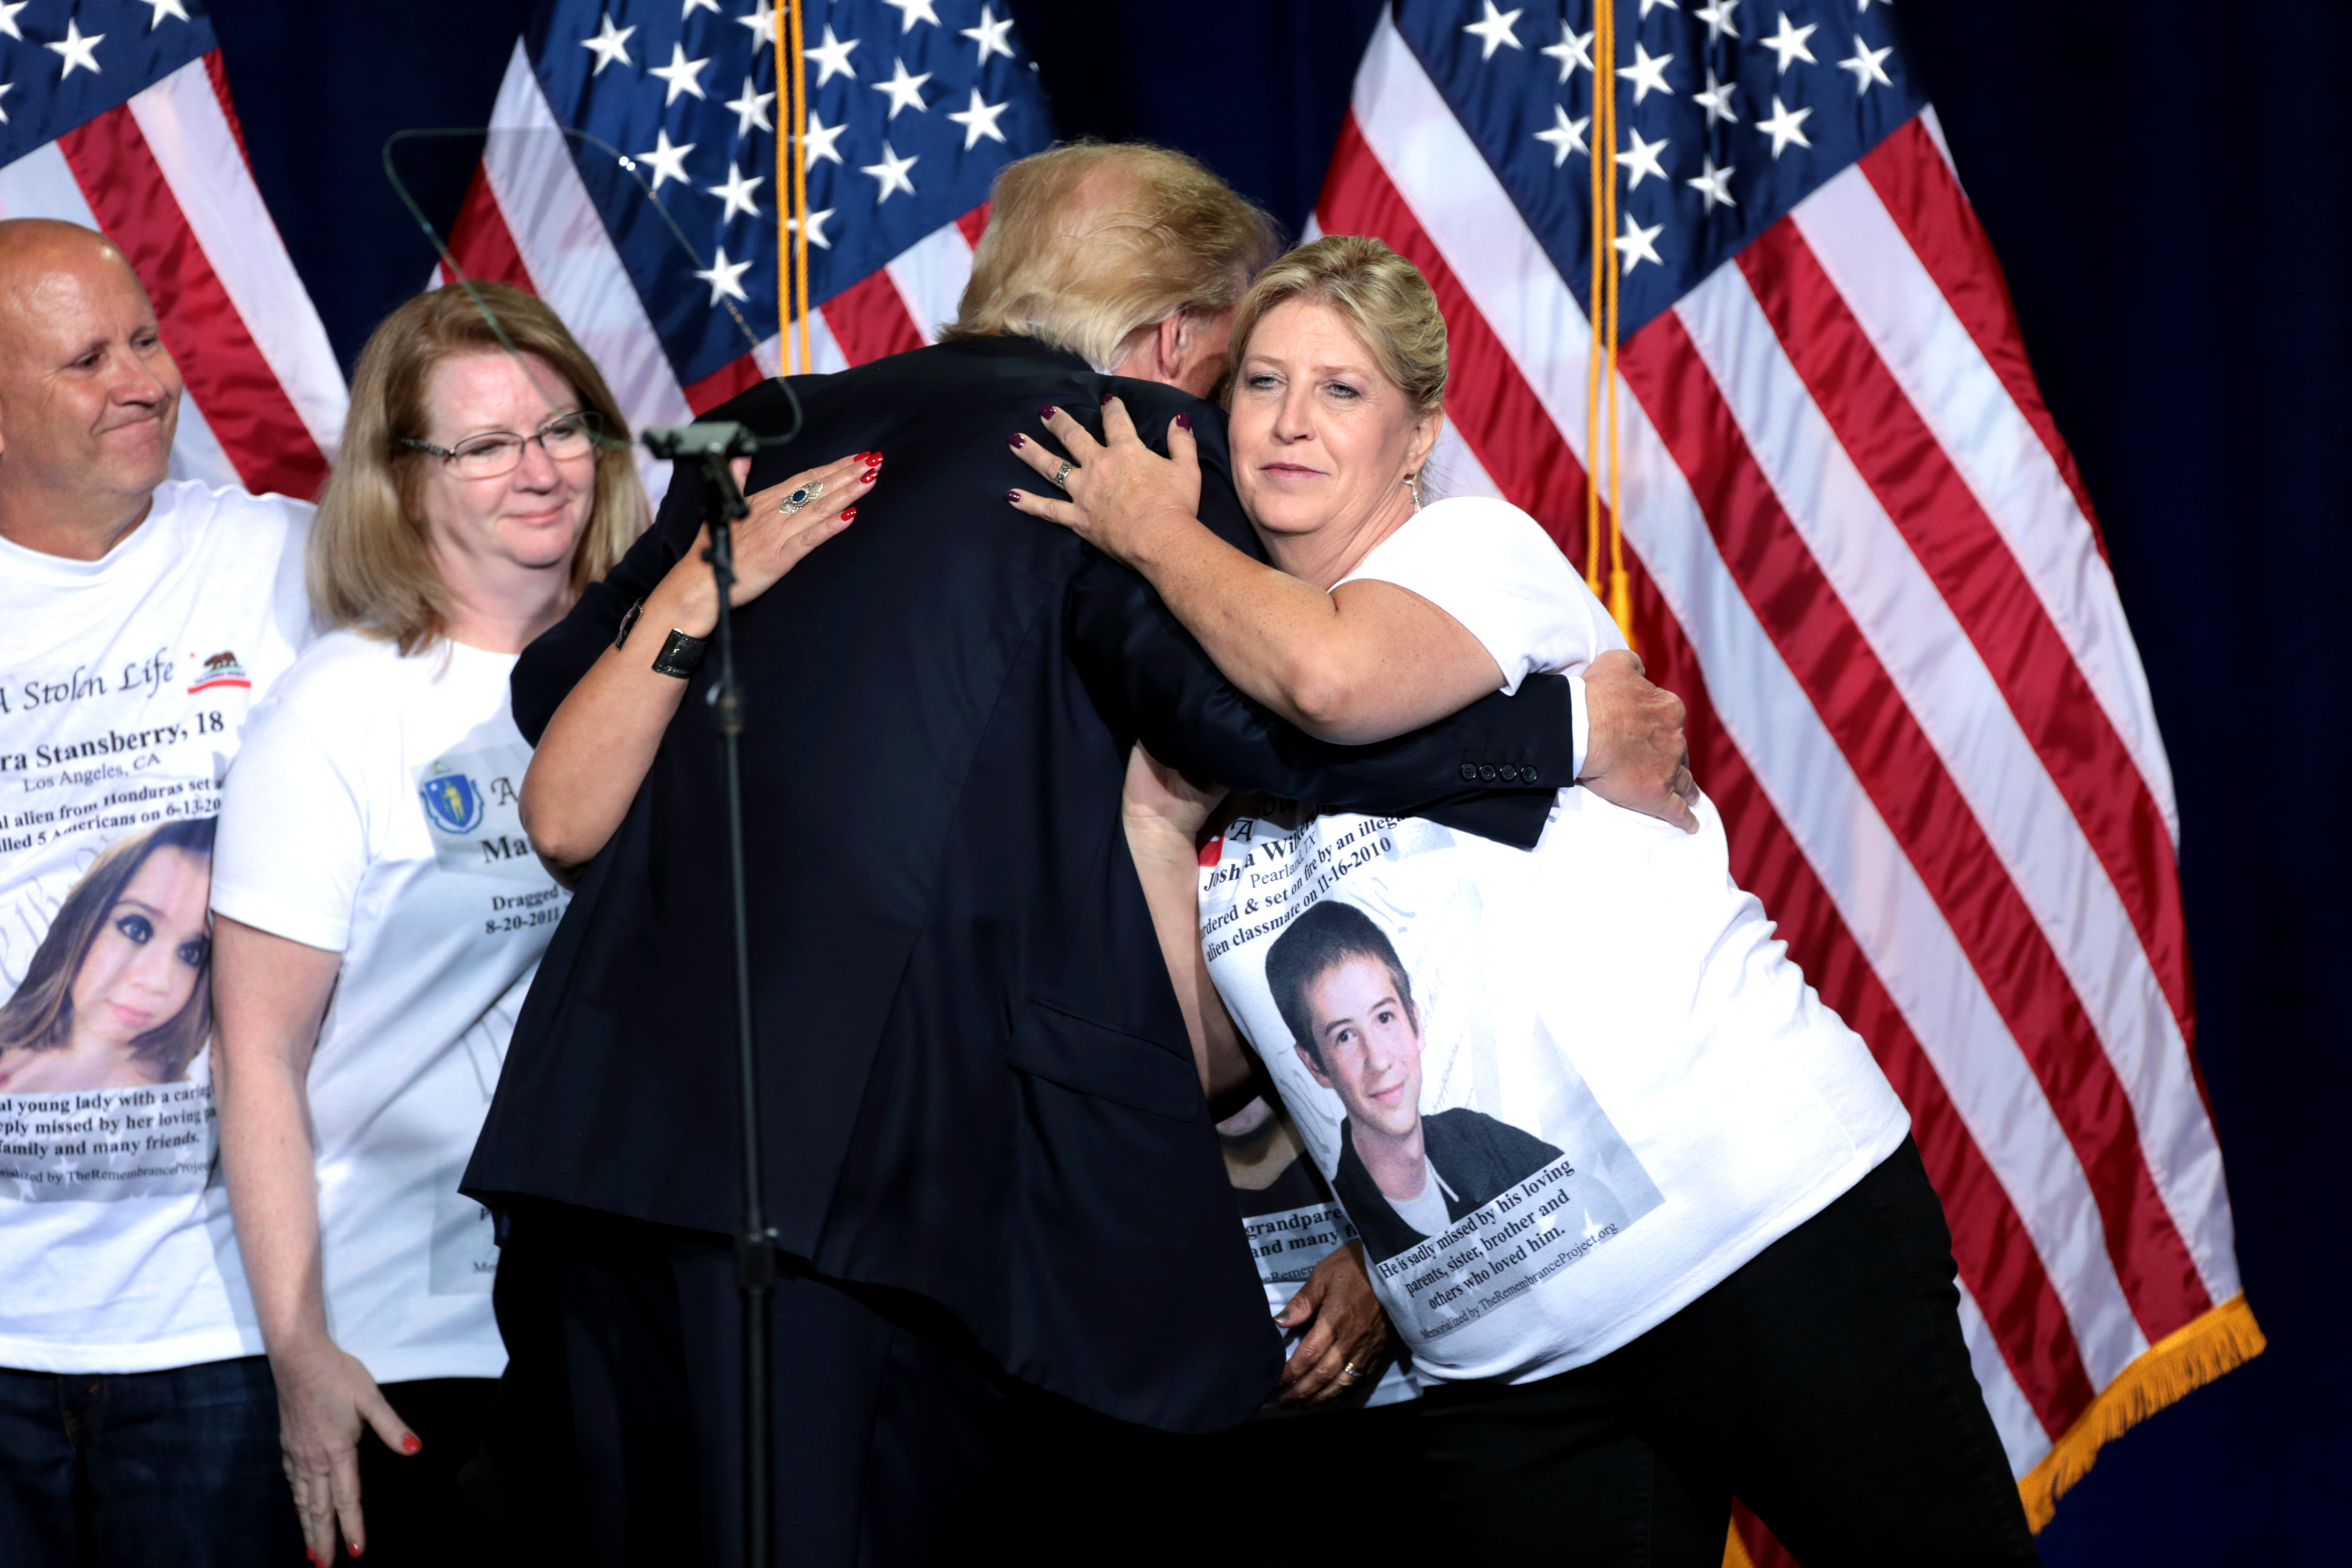 Why Did So Many White Women Vote For Trump?